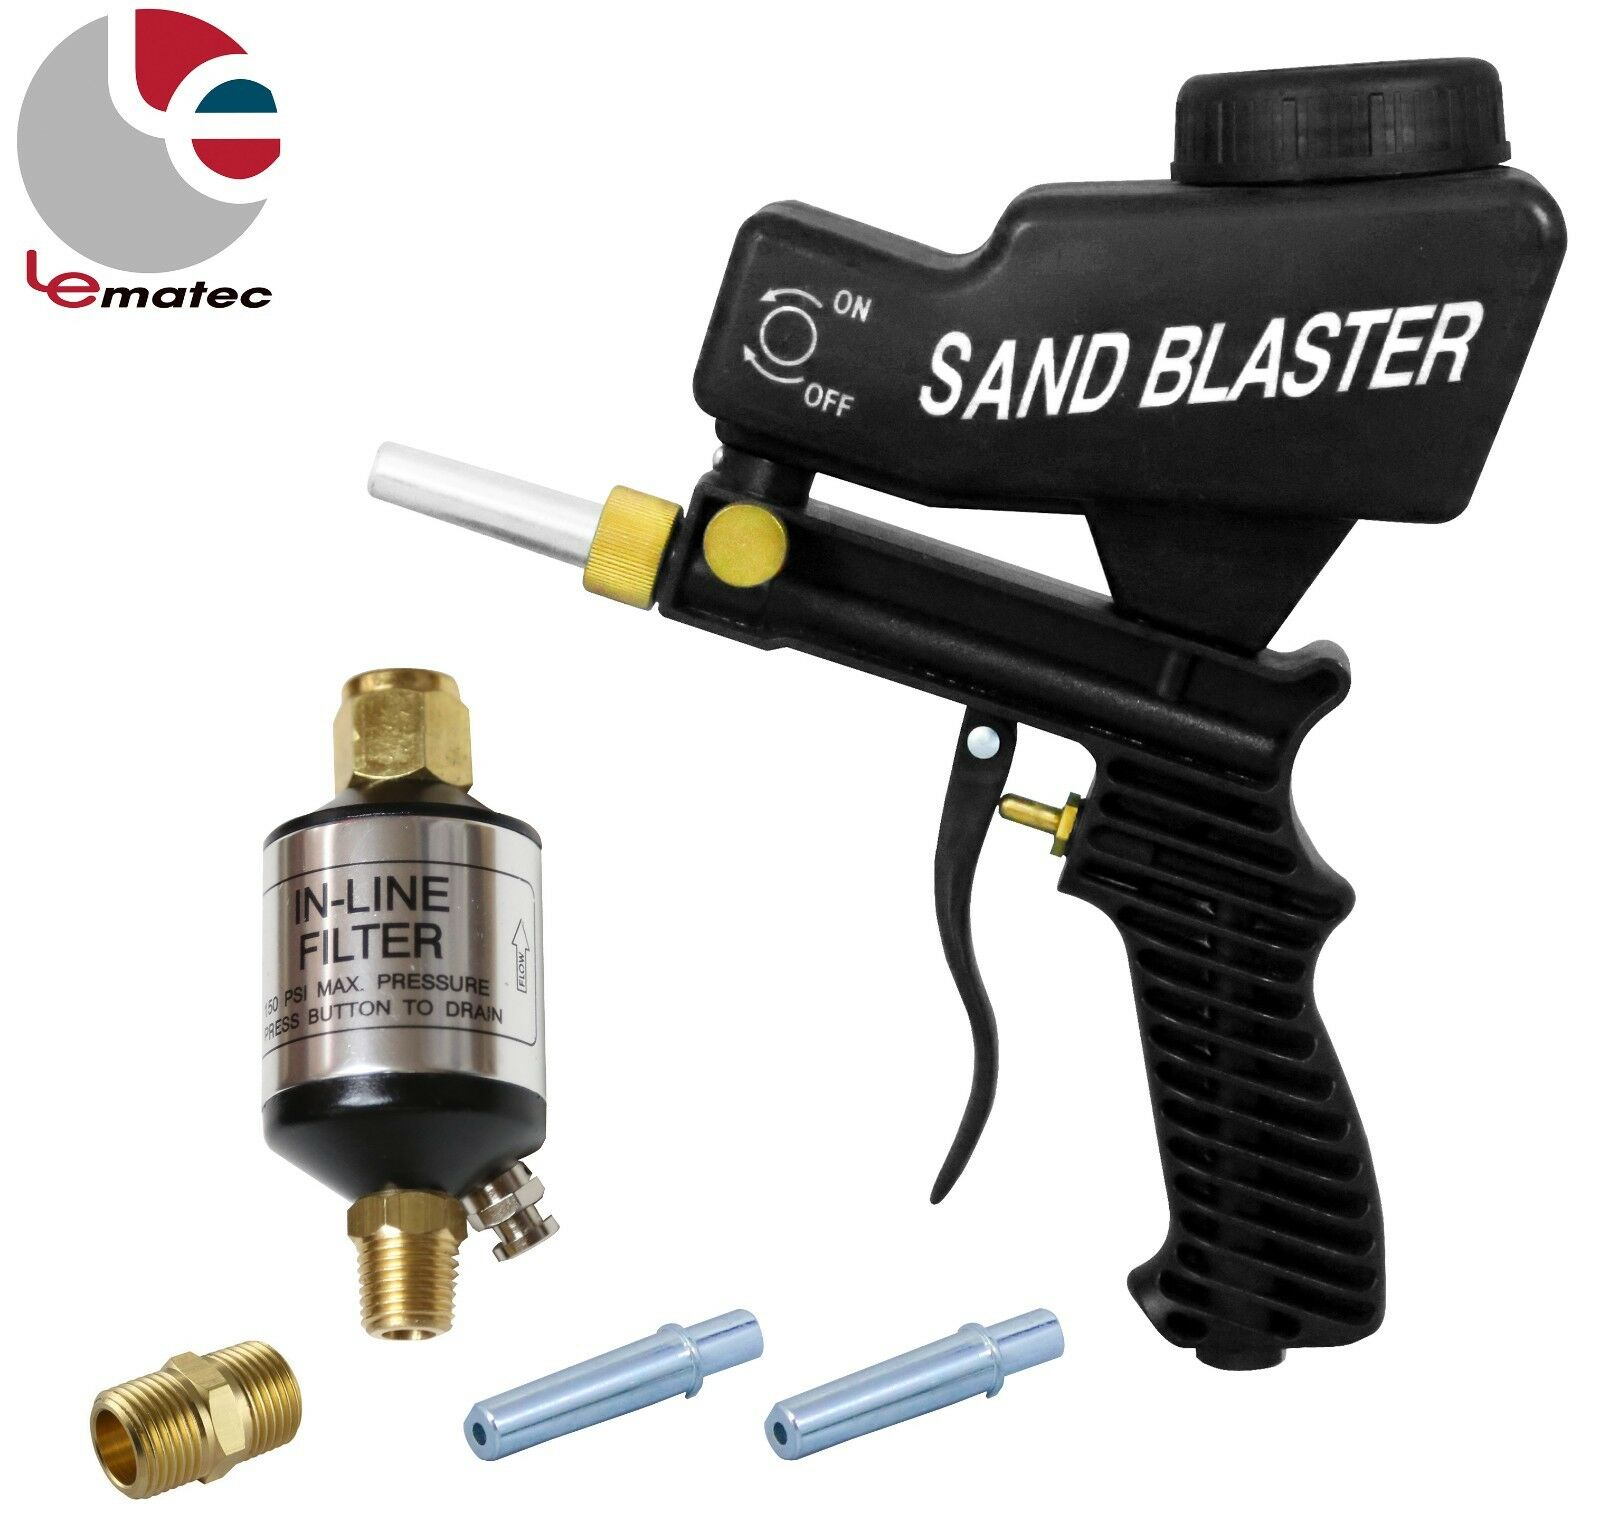 LEMATEC Sandblaster Gun W  1 4  Water Oil Separator Air Filter 2 Tips Power Tool